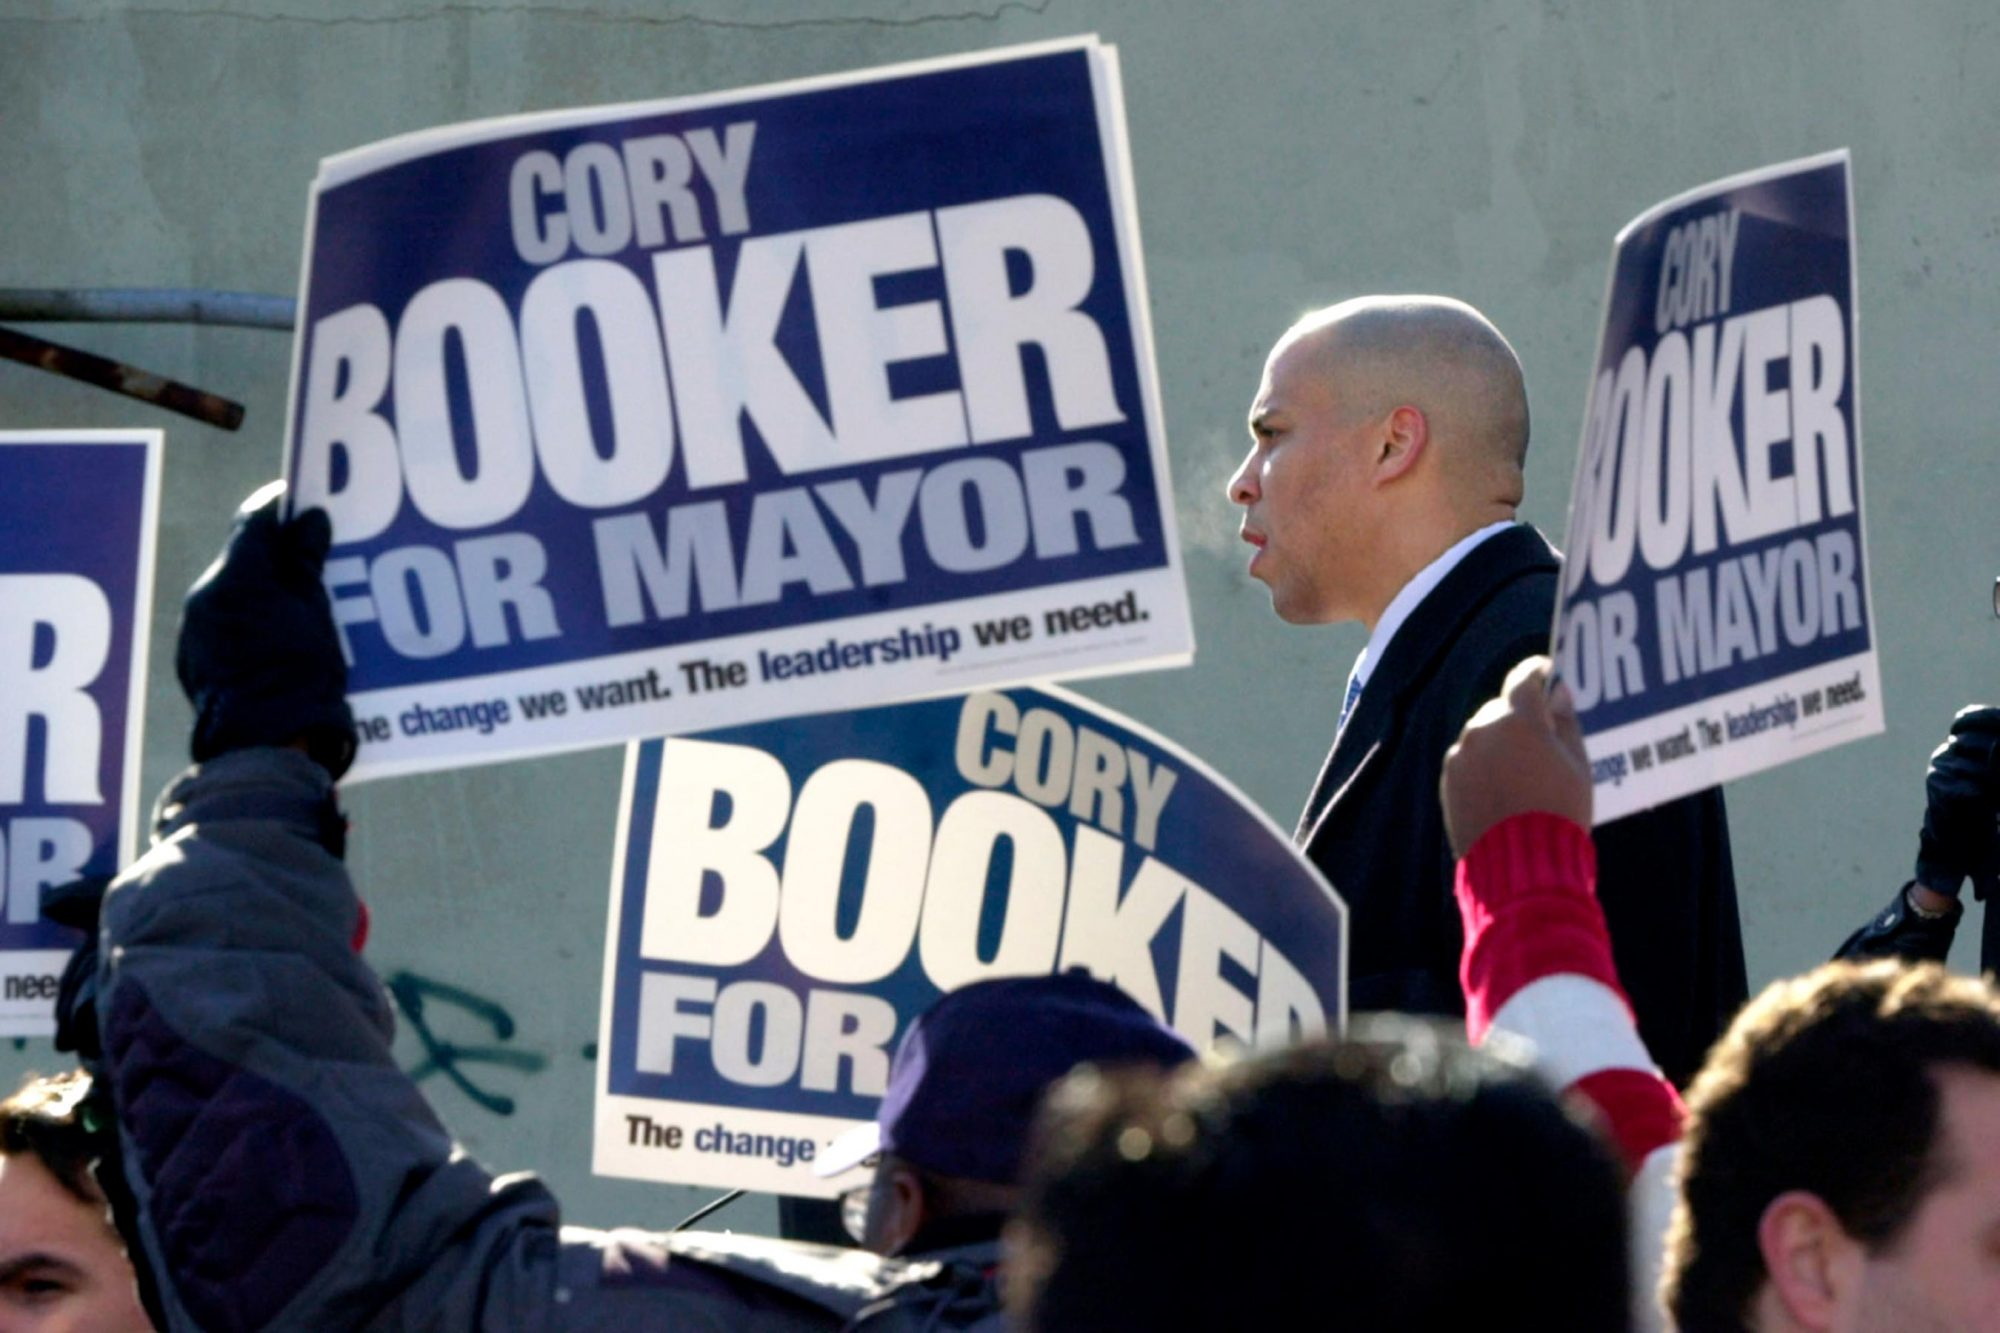 STREET FIGHT, Corey Booker, 2005, © PBS / Courtesy: Everett Collection